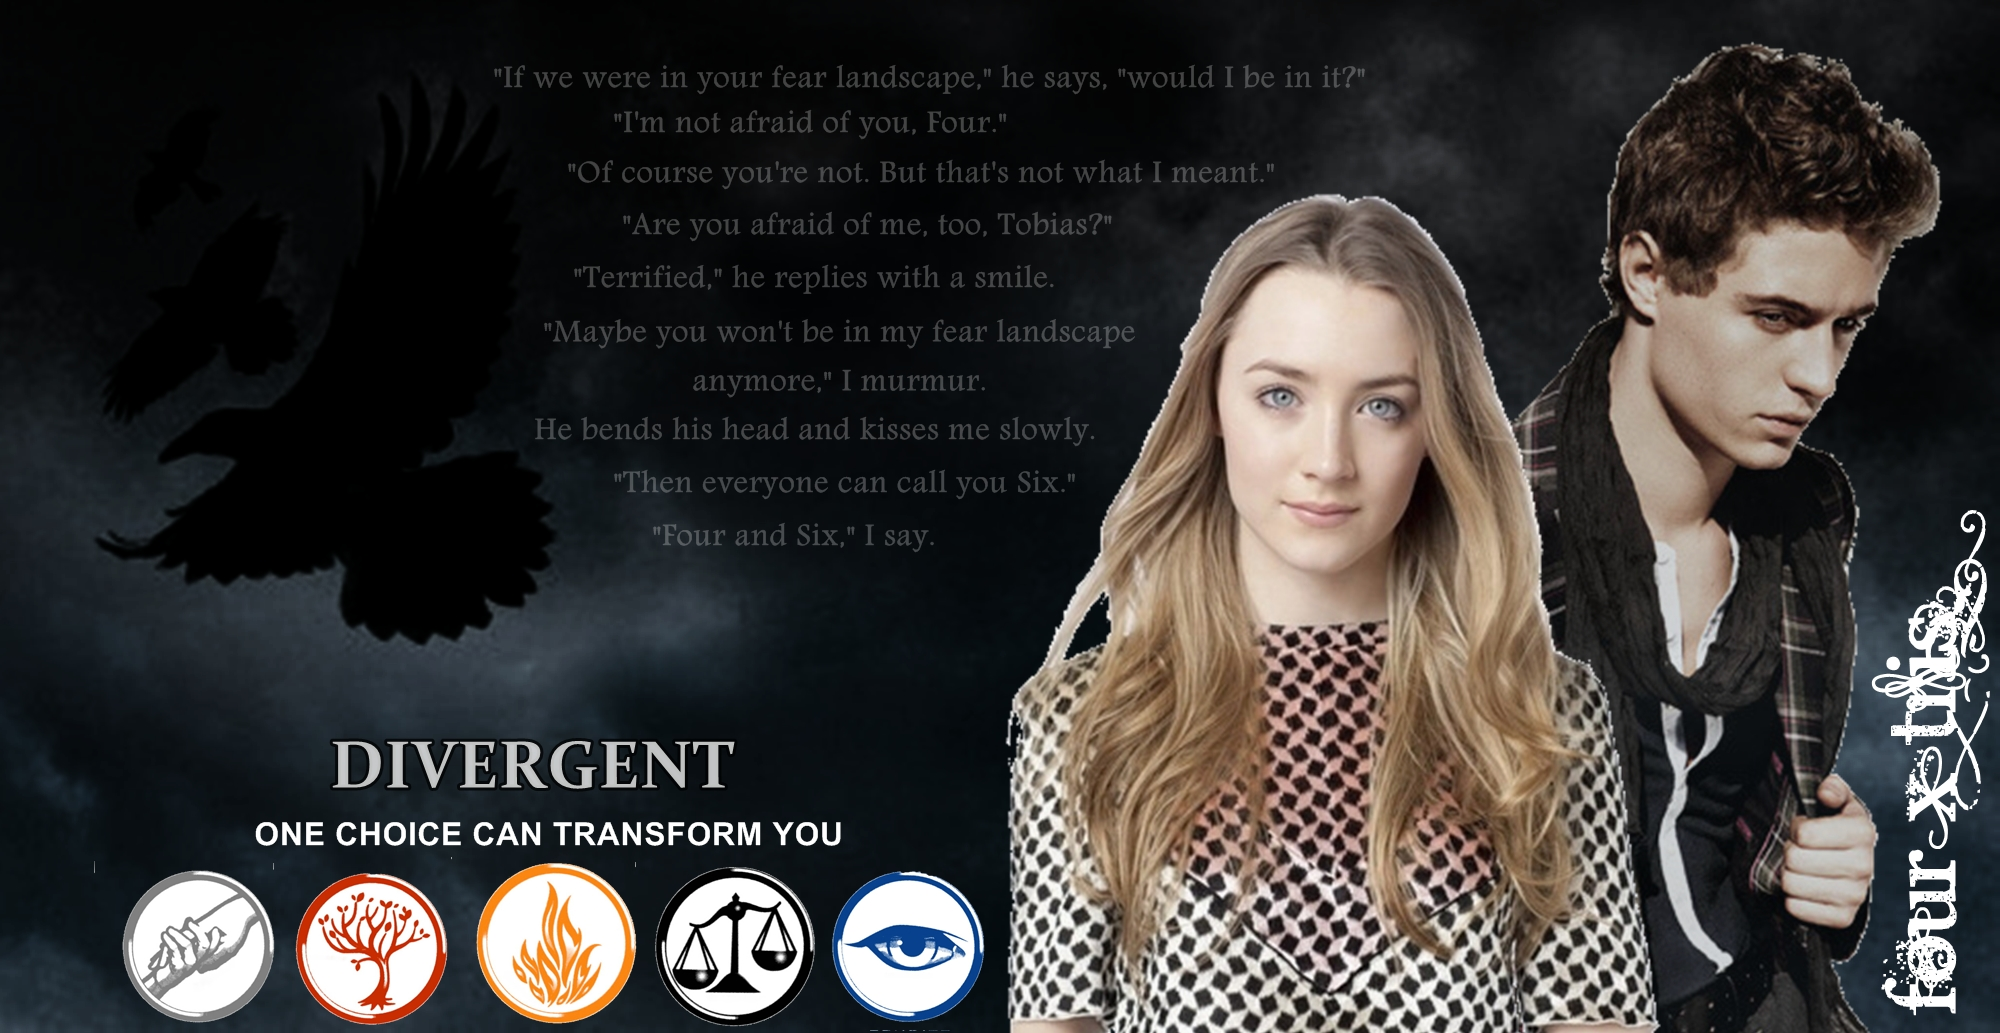 Four And Tris Divergent Quotes Divergent Quotes Tris ...